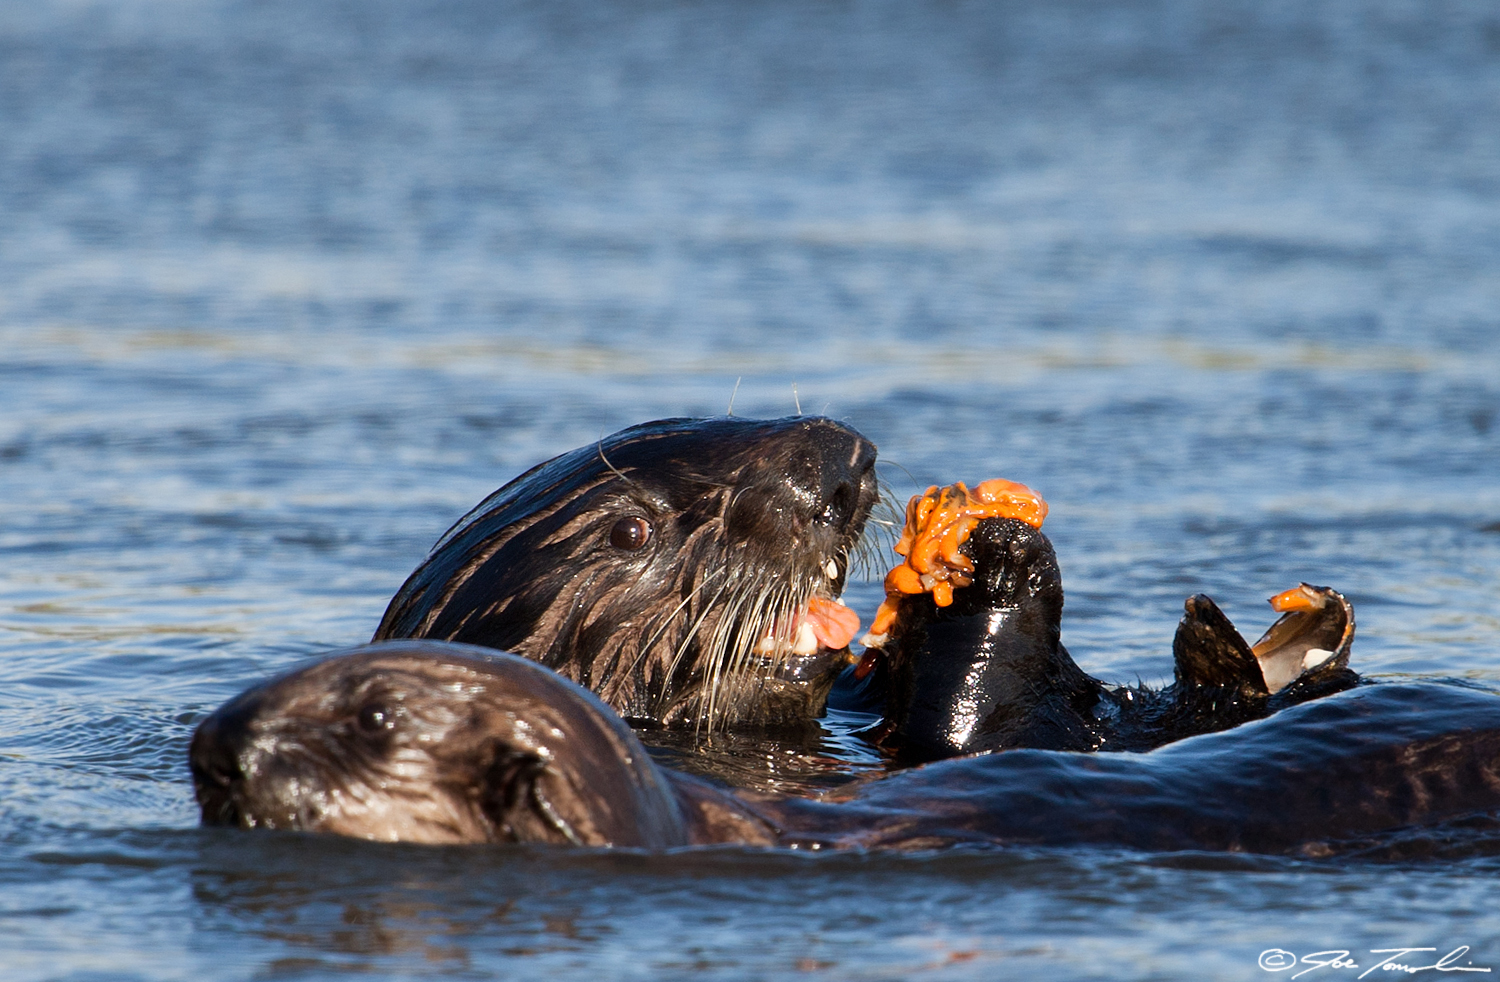 Mom keeps a watchful eye on pup while eating a mussel